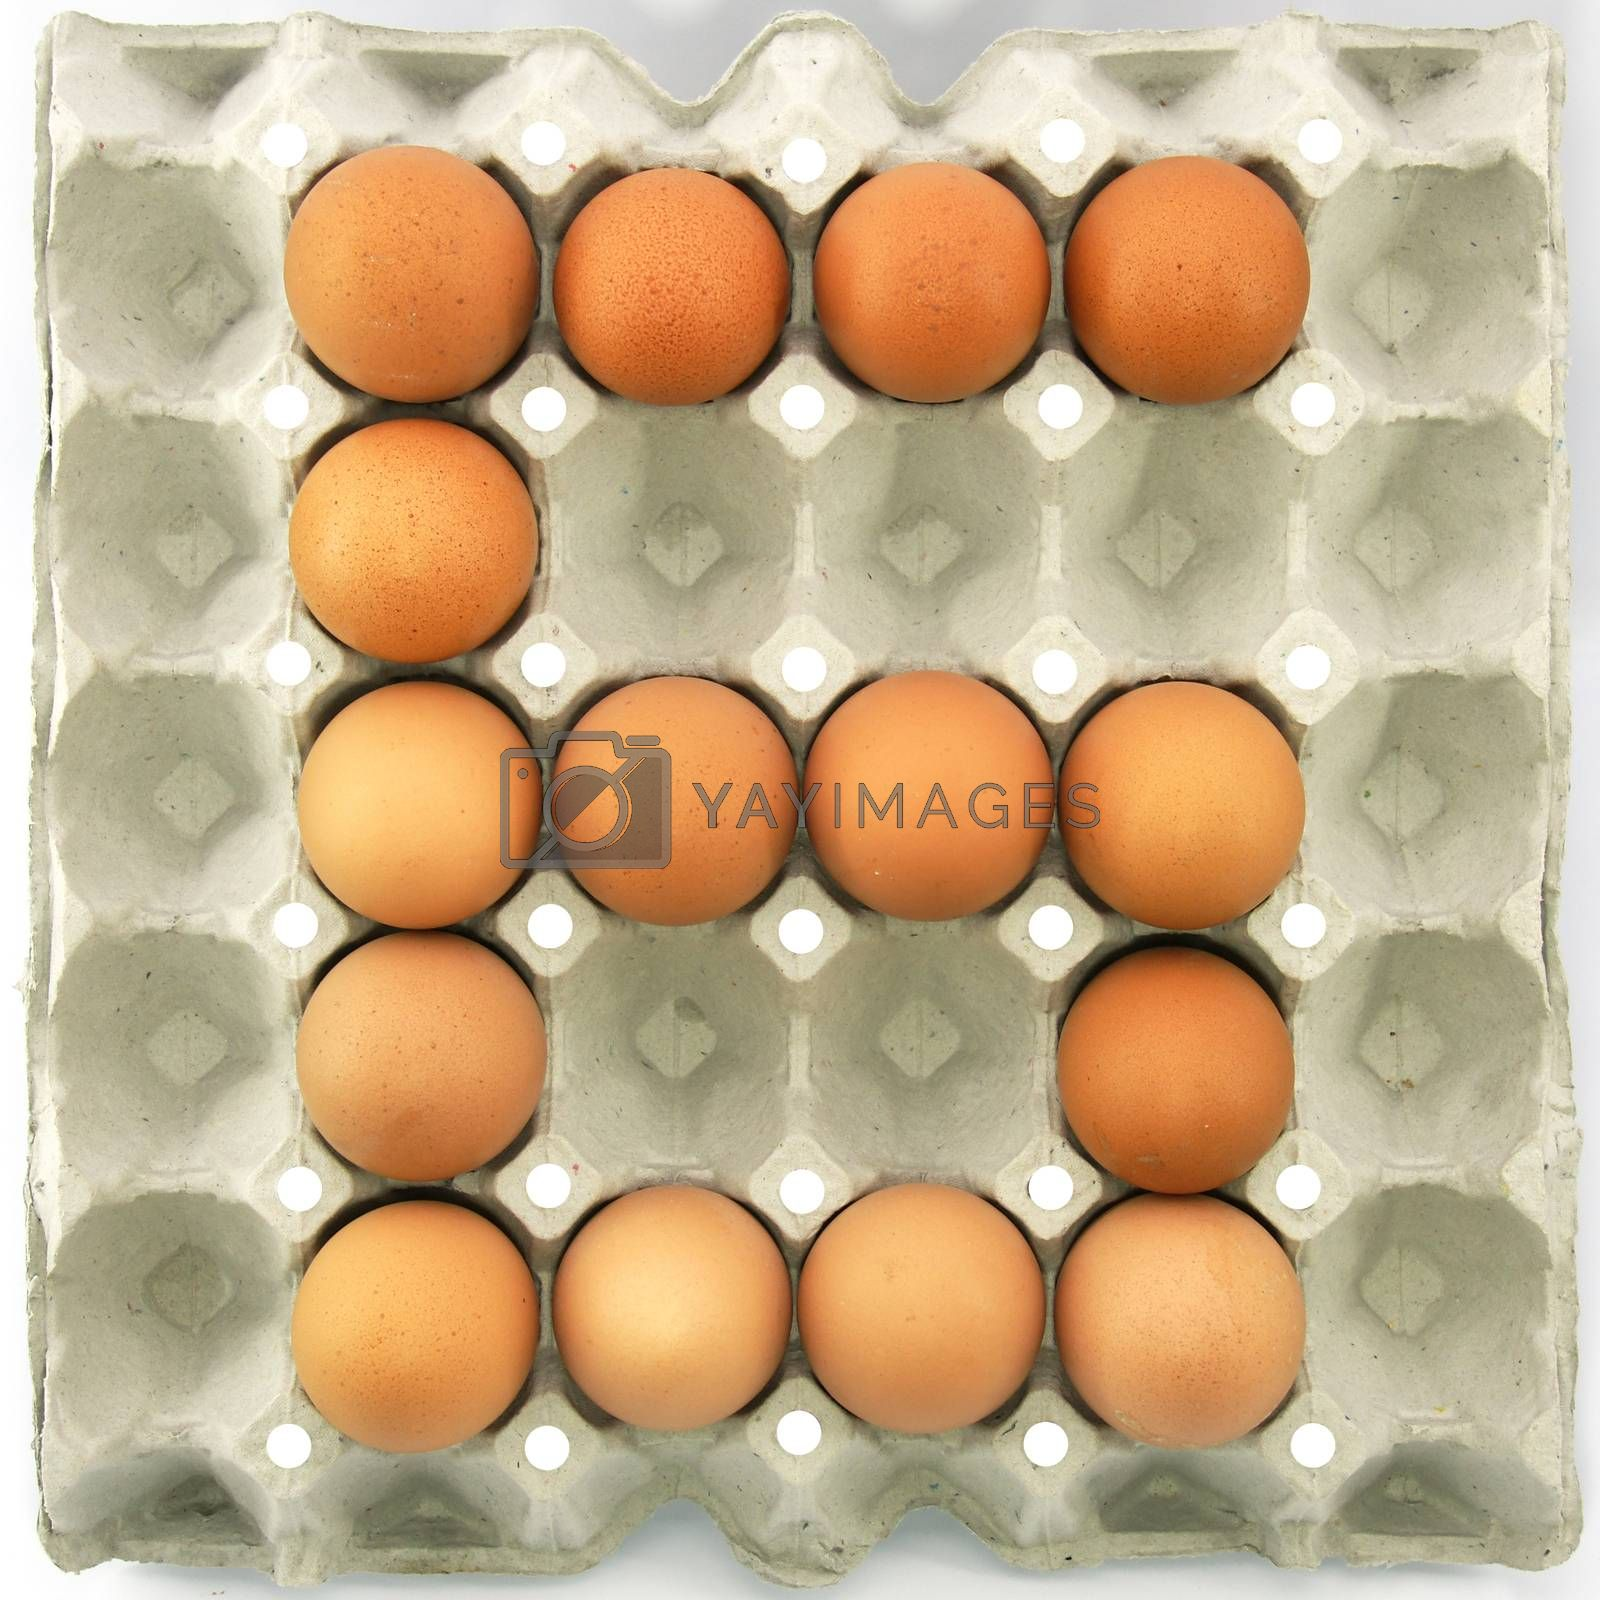 Number six of eggs in the paper package tray